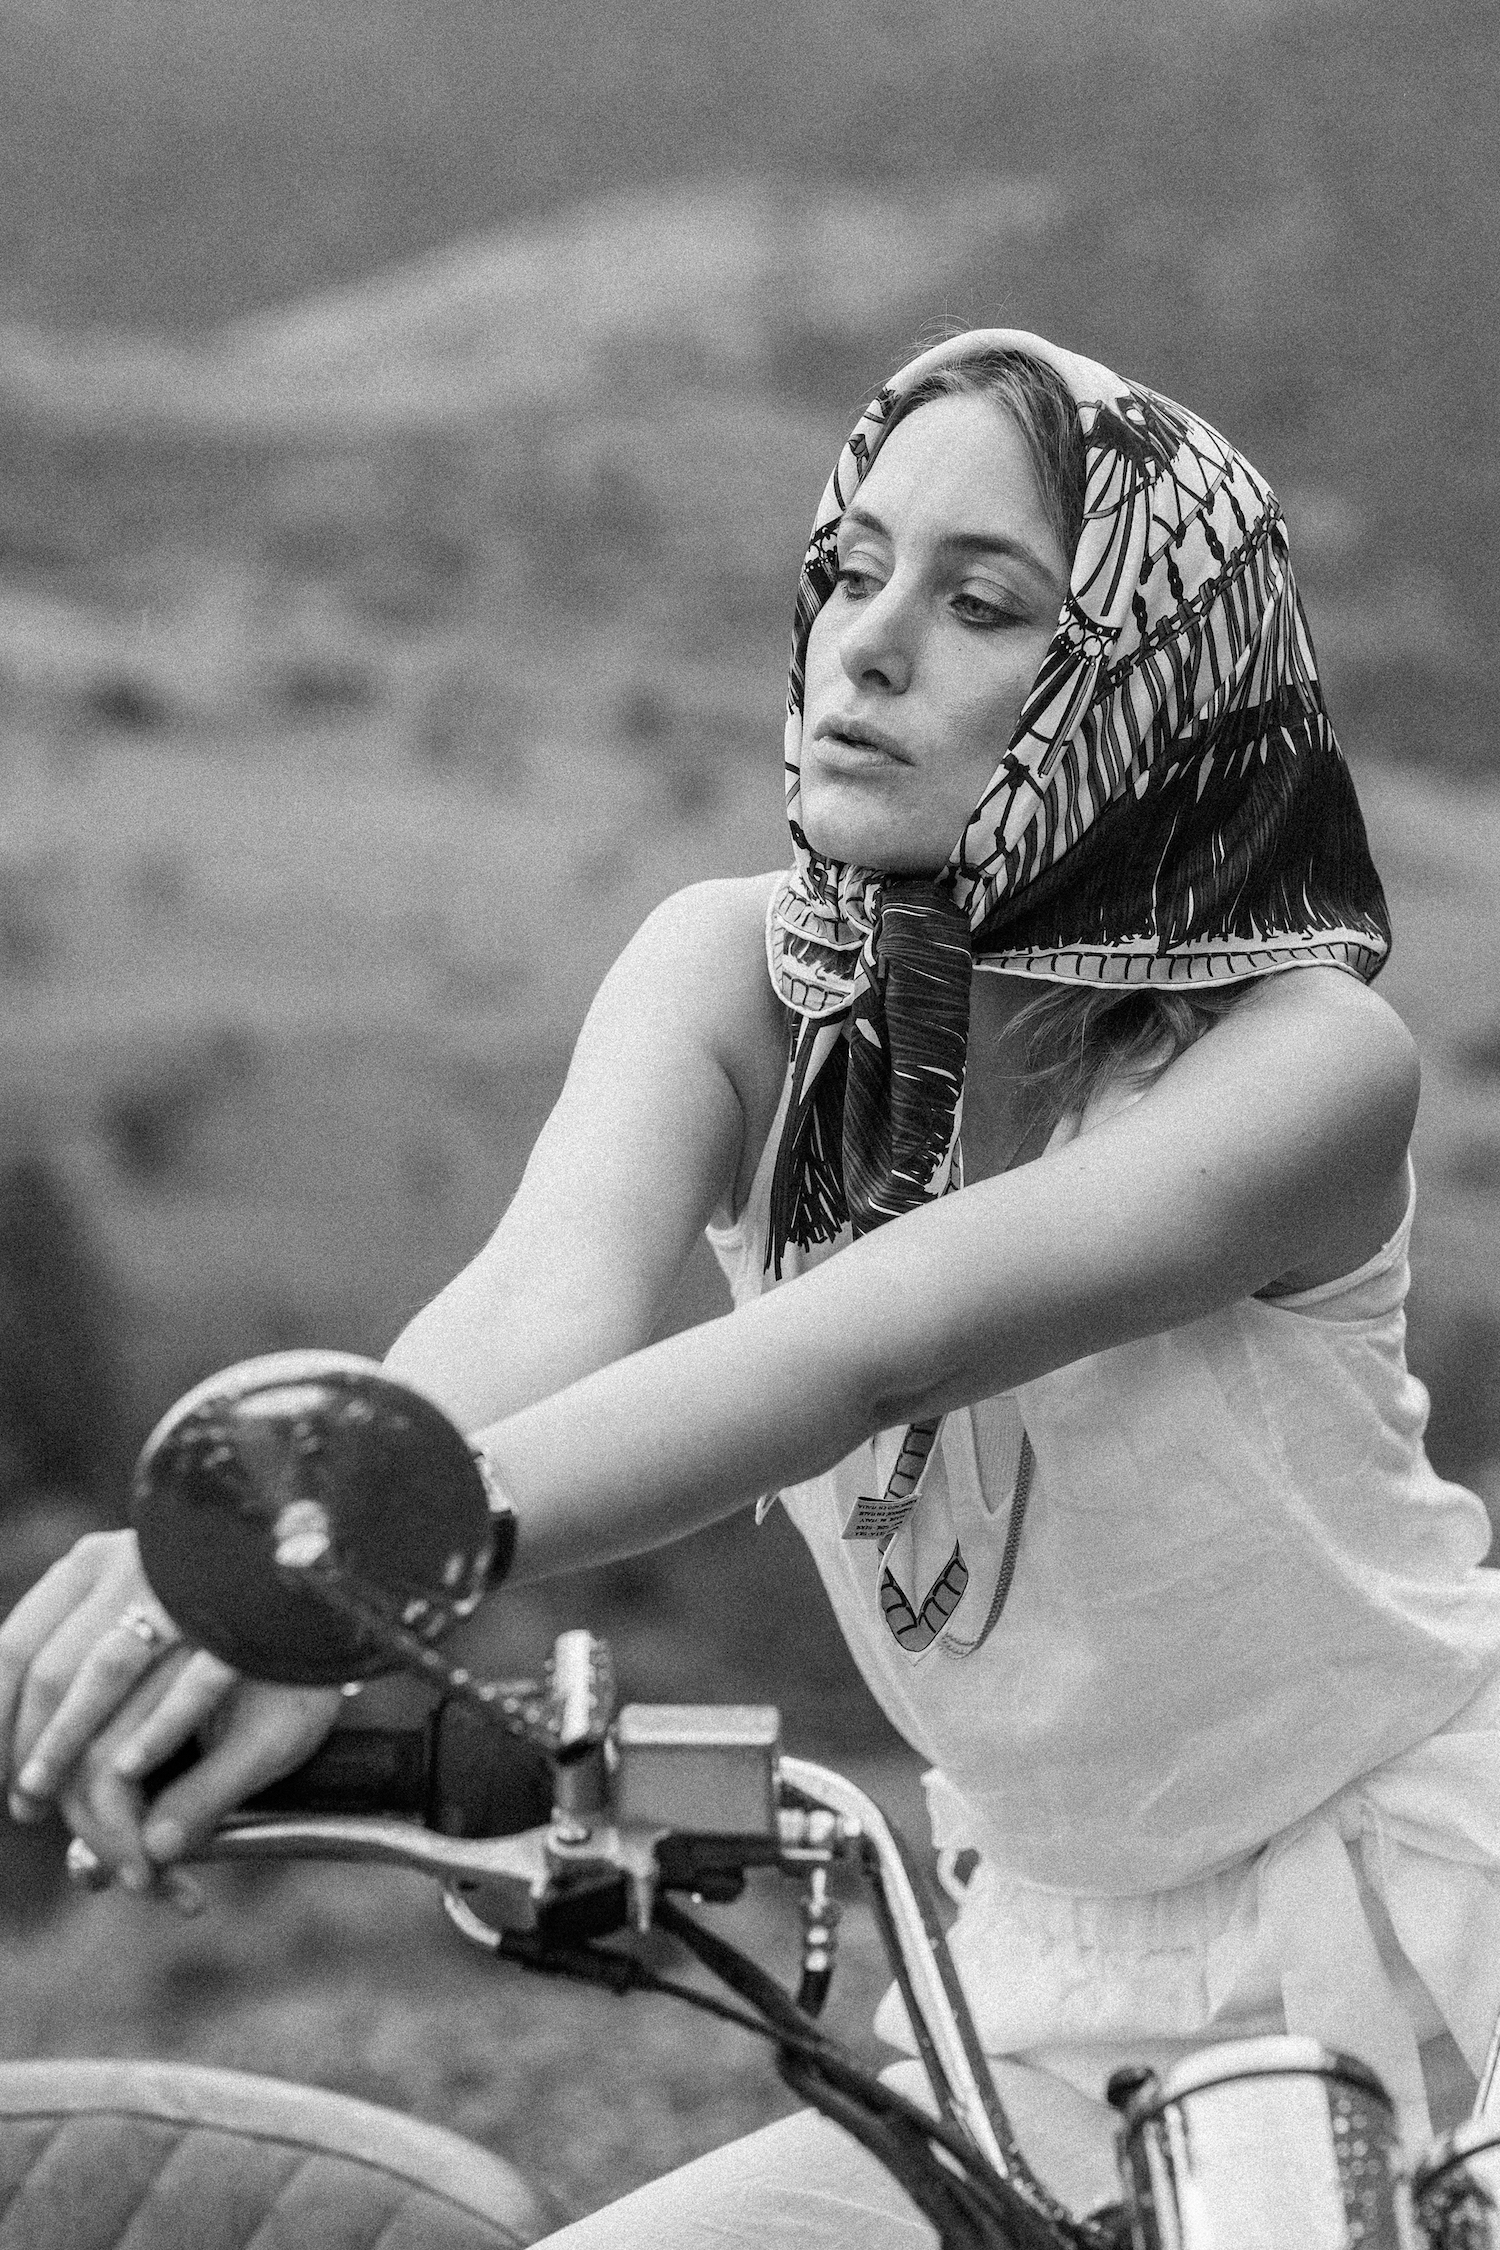 MOTORCYCLE MOROCCO